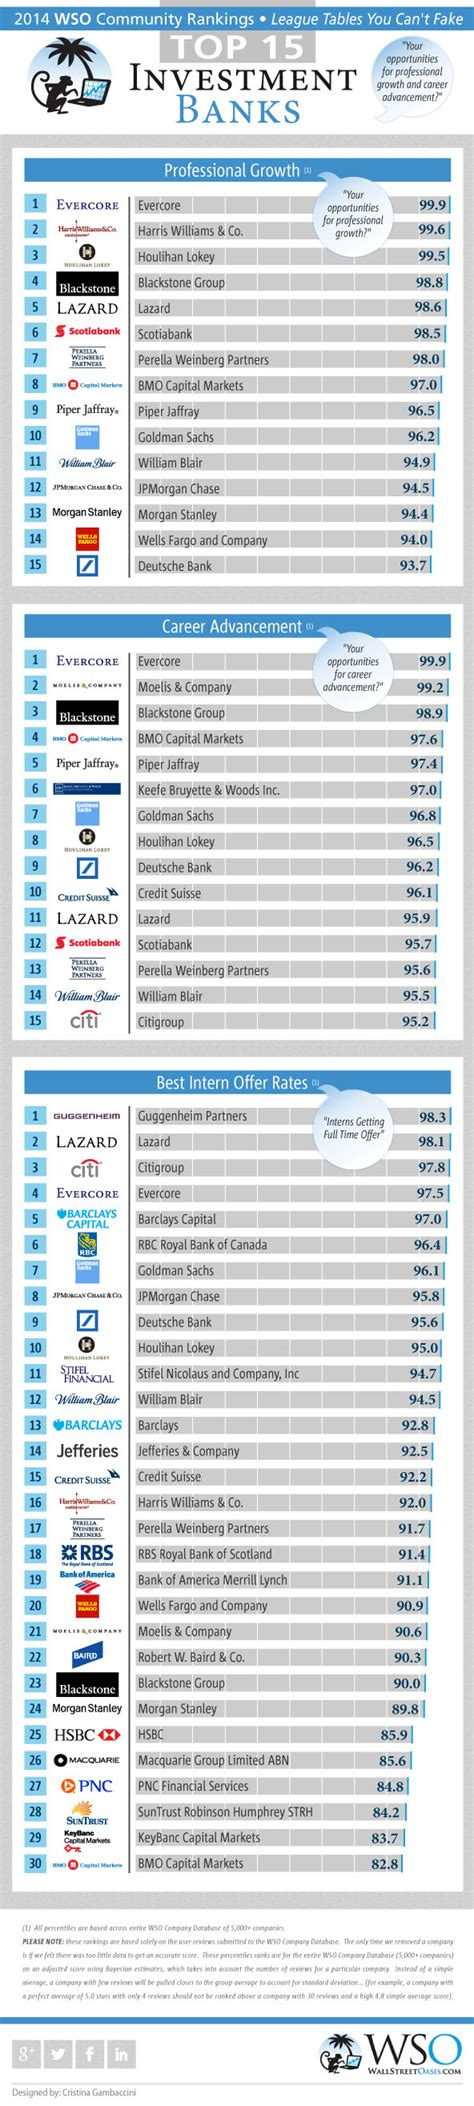 top investment banks 2014 wso rankings for investment banks career part 2 of 1